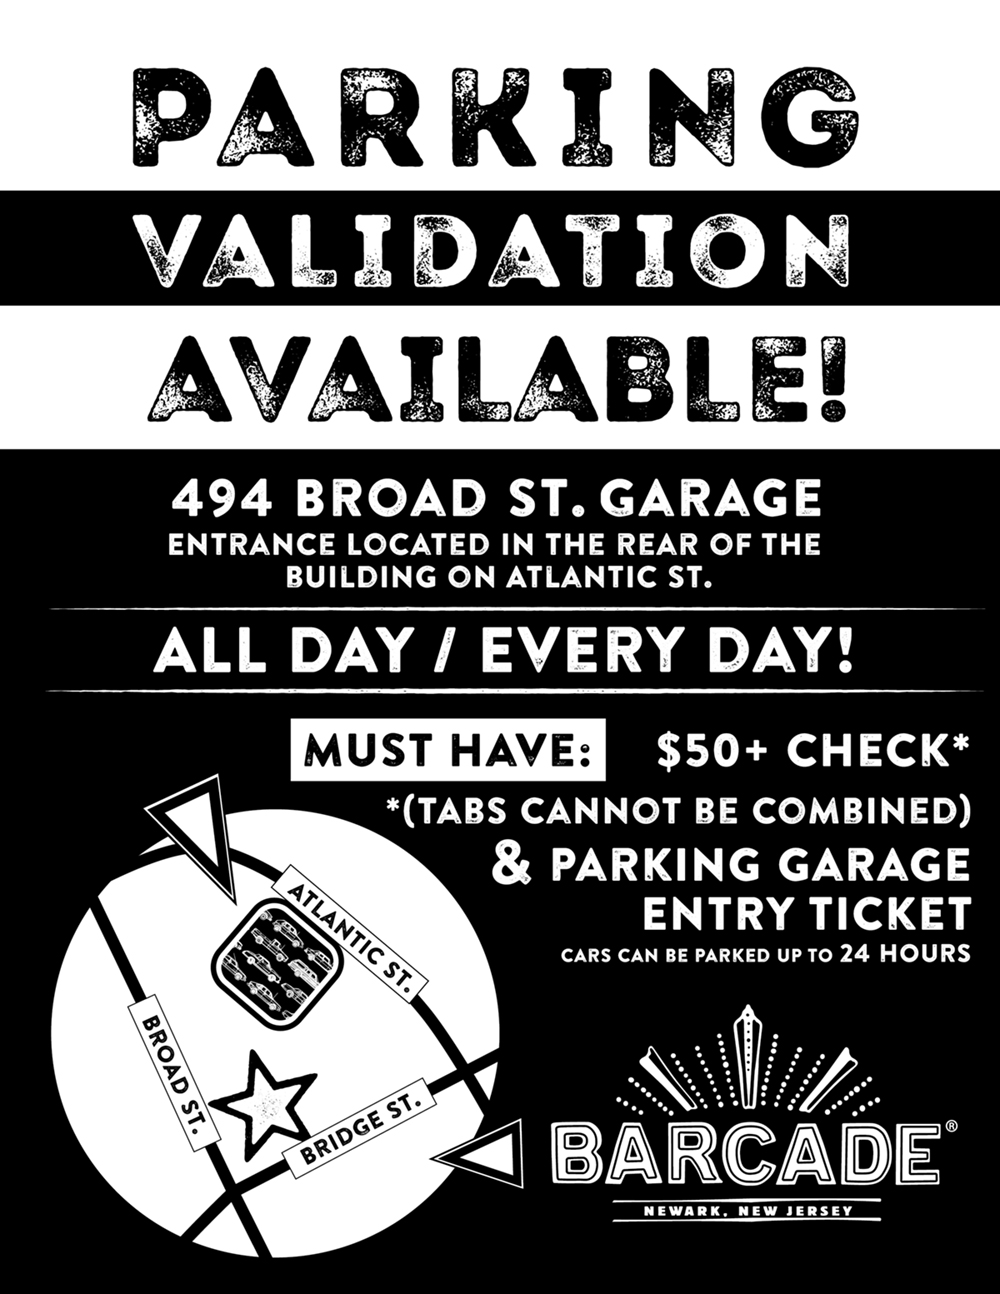 Barcade® - Newark - Parking Validation at 494 Broad Street Garage ALL DAY, EVERY DAY